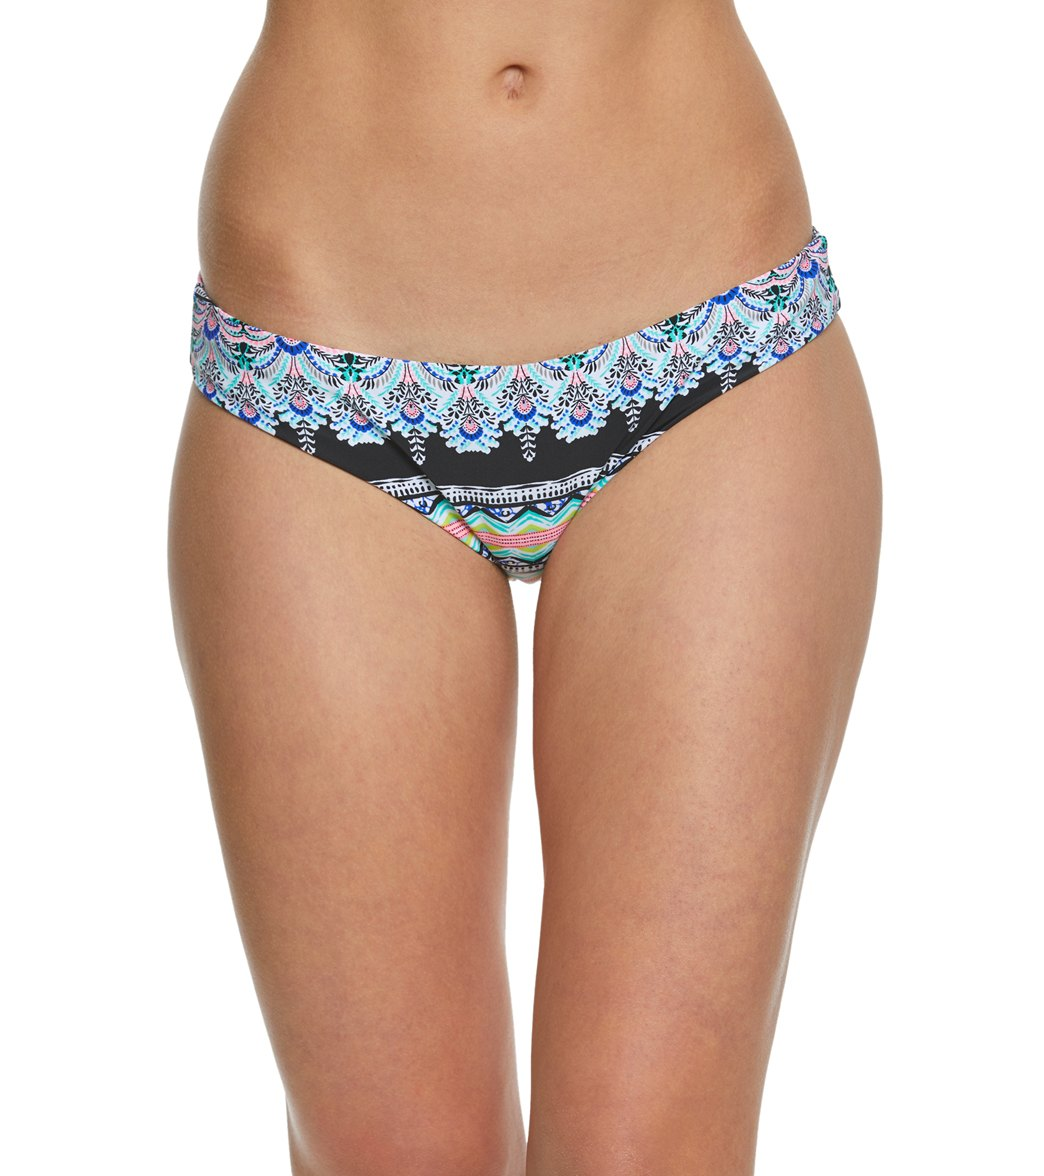 e4ca80f9fb57e Raisins Barbados Bound Bum Bum Bikini Bottom at SwimOutlet.com